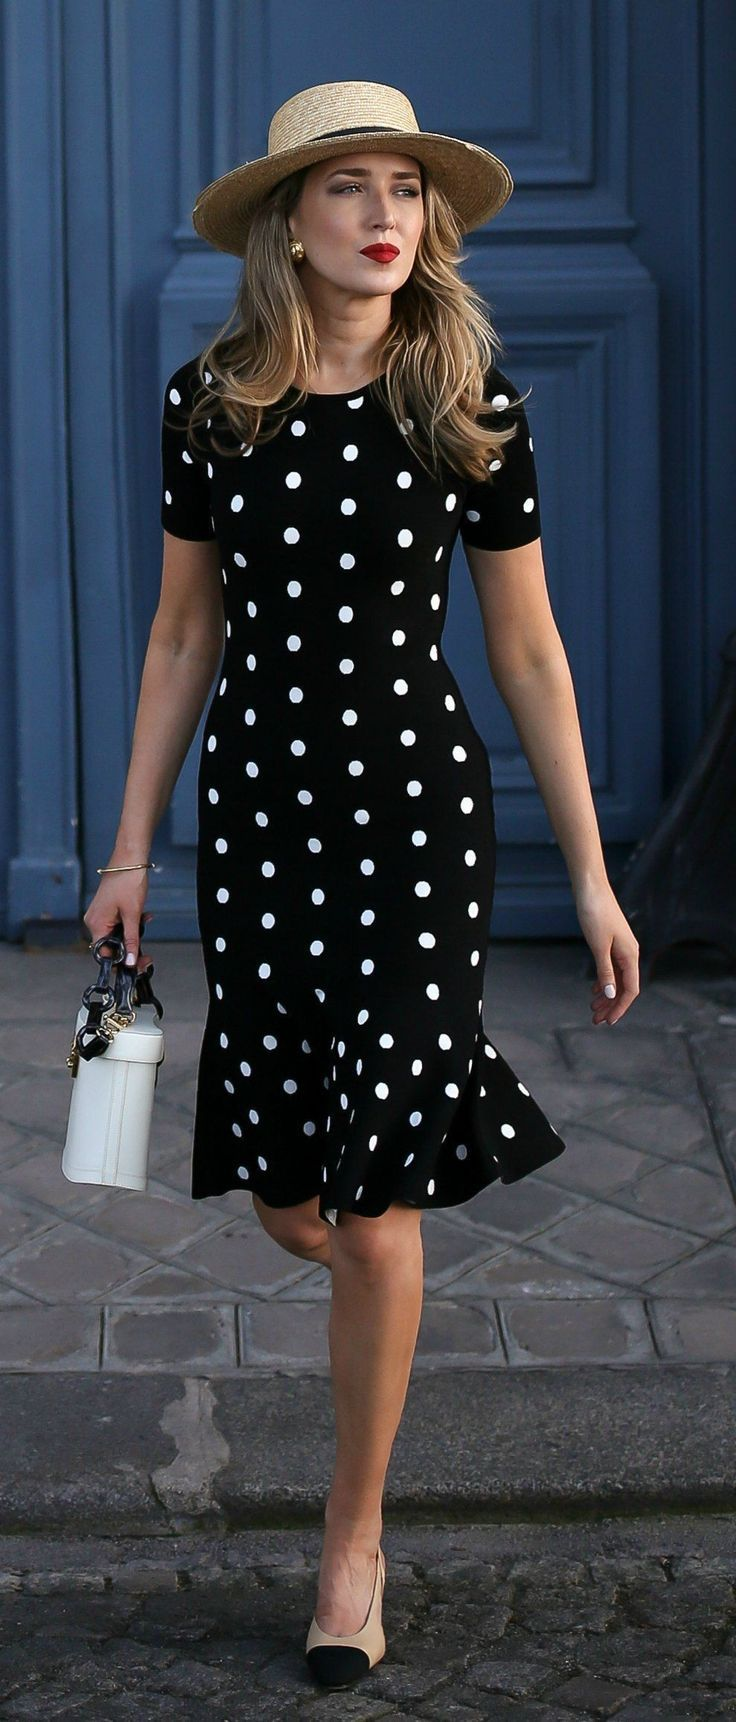 b86b99b2c Black dress with white polka dots, red lips, straw hat. Modest summer outfit